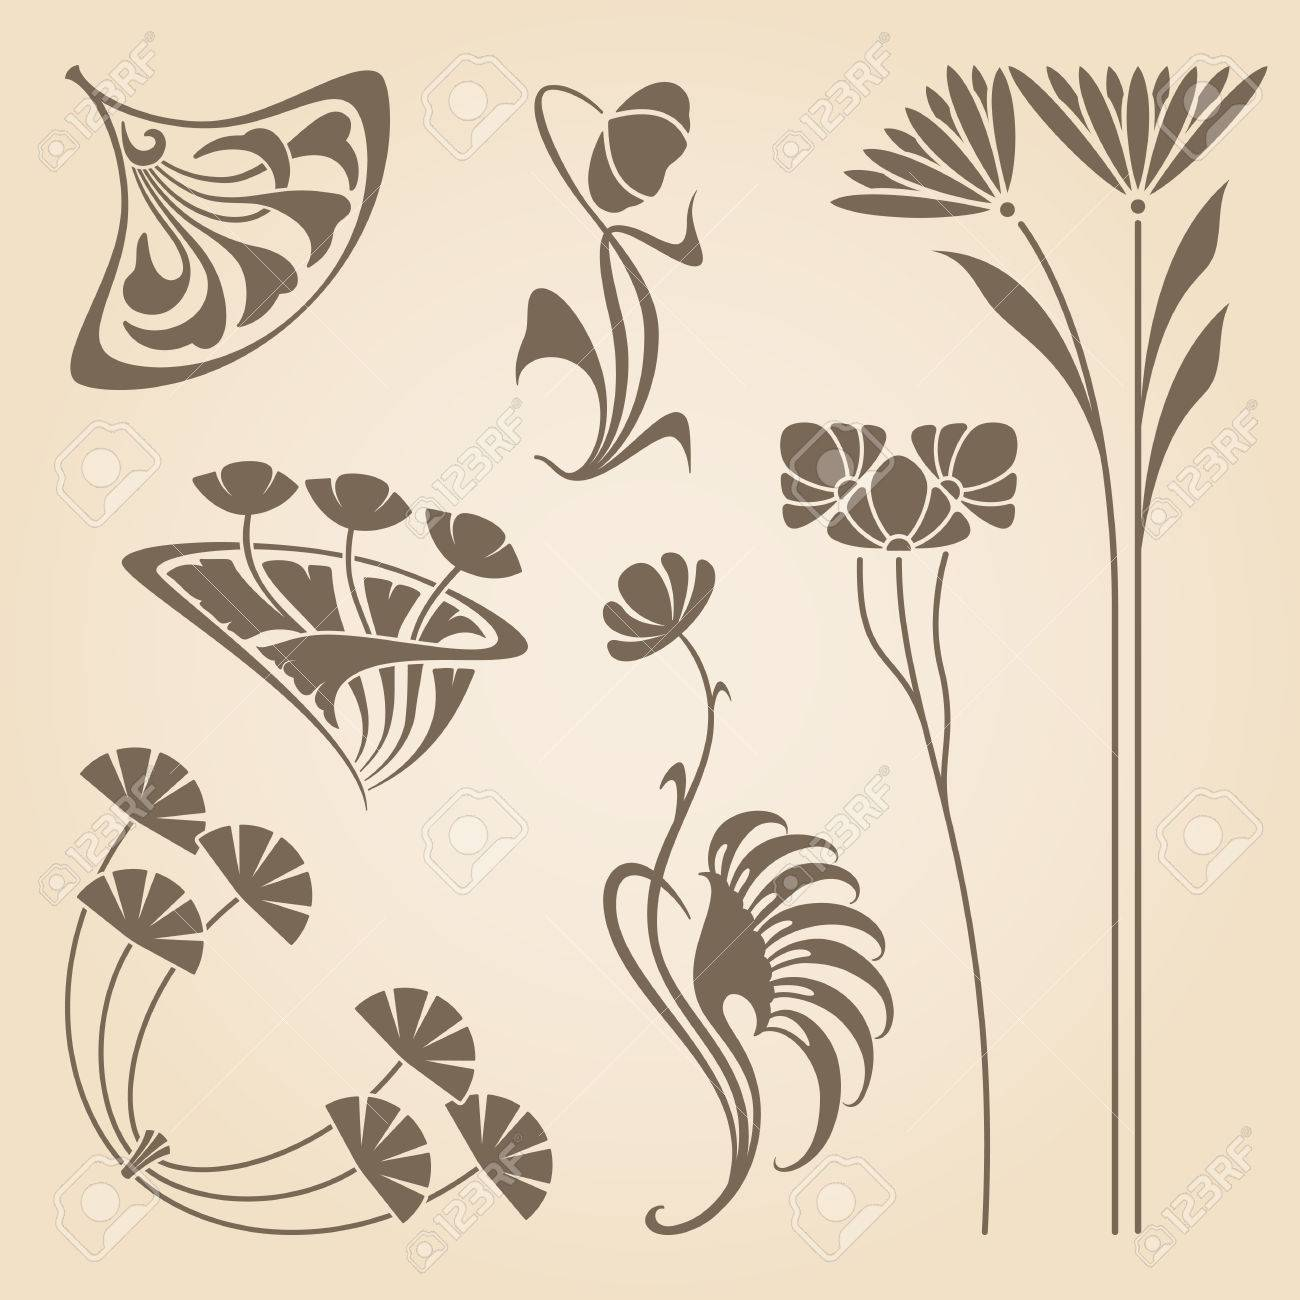 Art Deco Design Elements vector set of vintage art nouveau design elements. royalty free